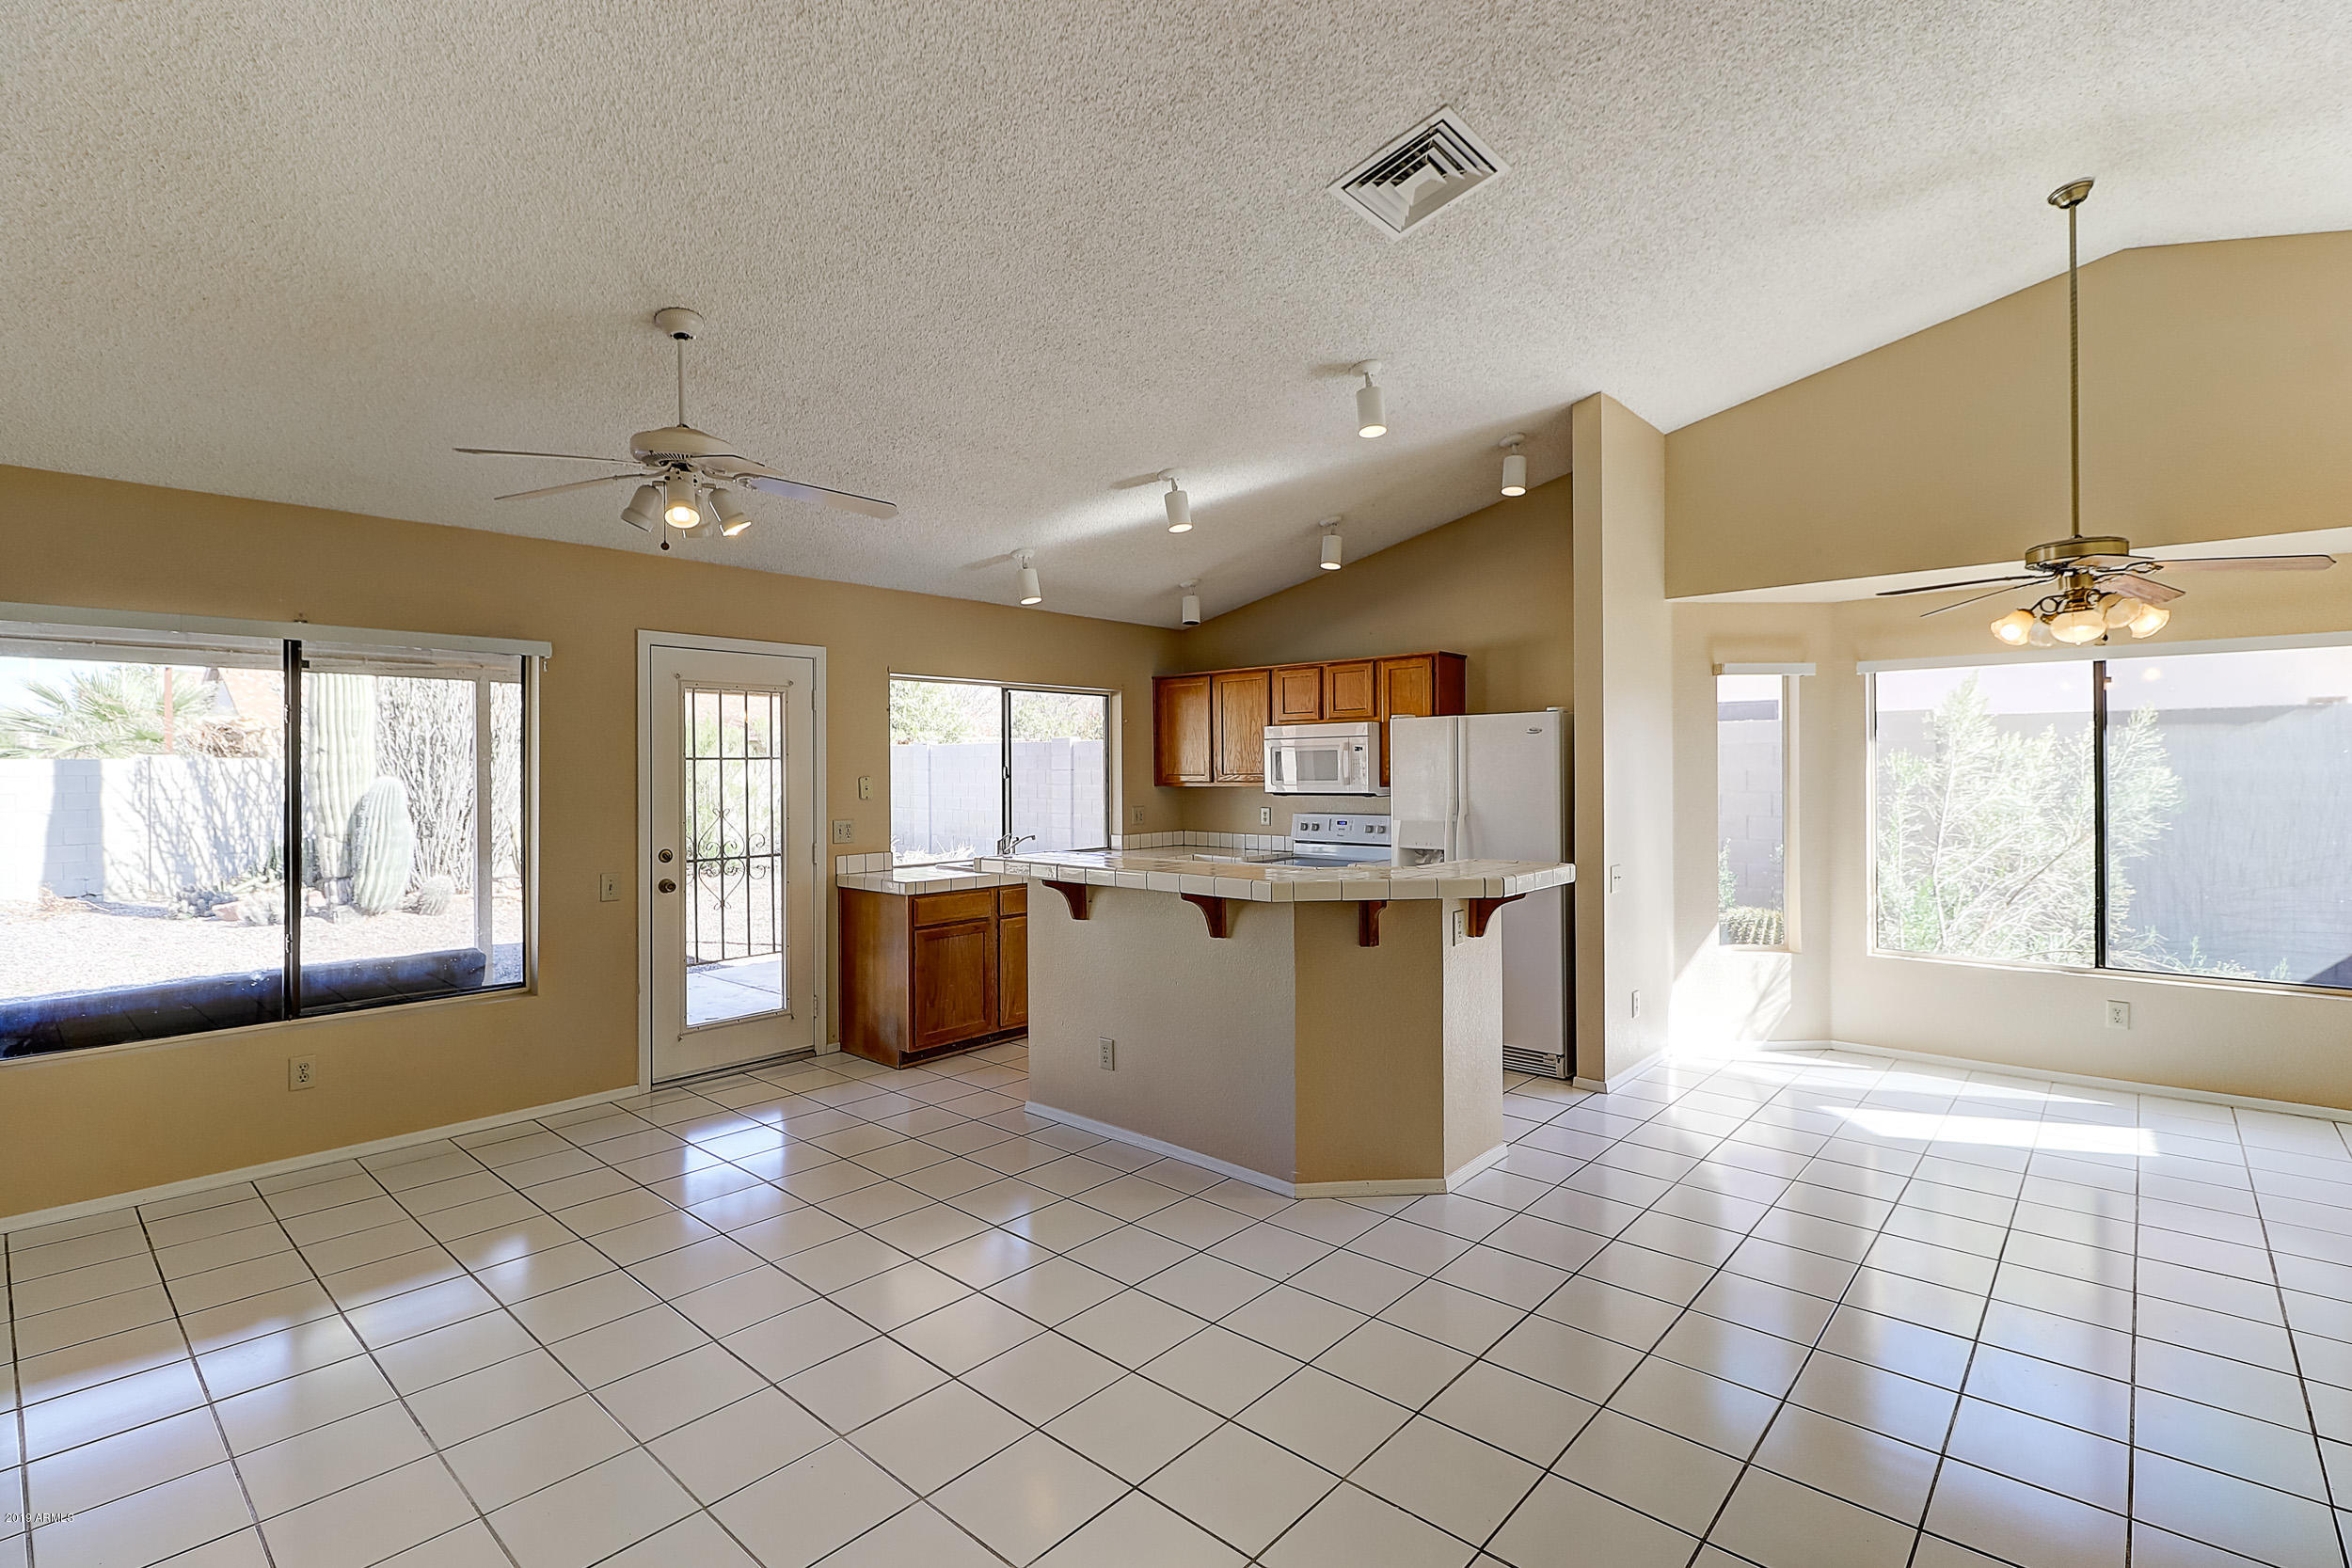 Photo of 4660 W WHITTEN Street, Chandler, AZ 85226